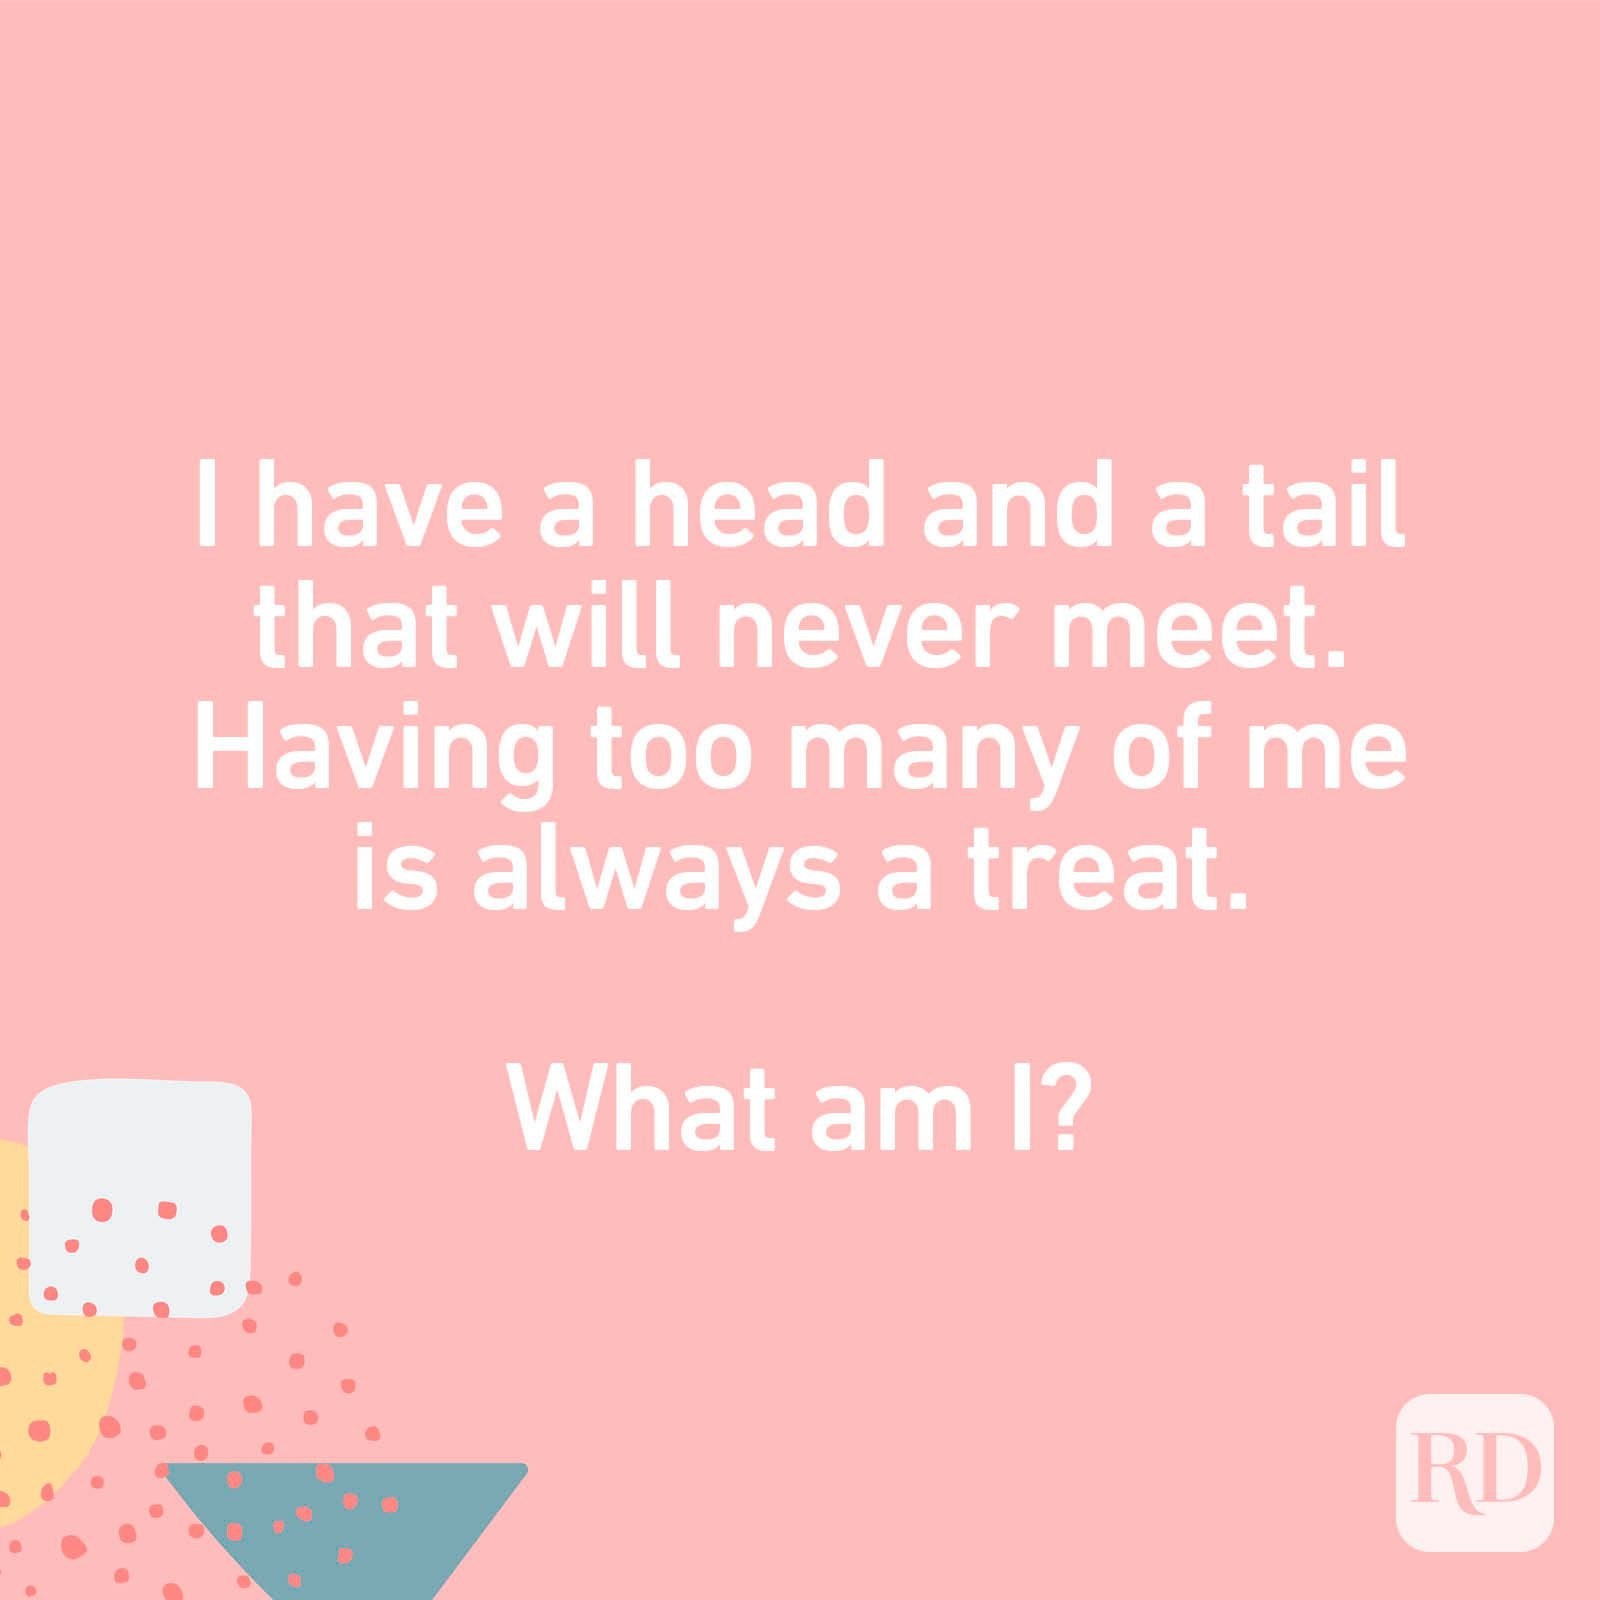 I have a head and a tail that will never meet. Having too many of me is always a treat. What am I?